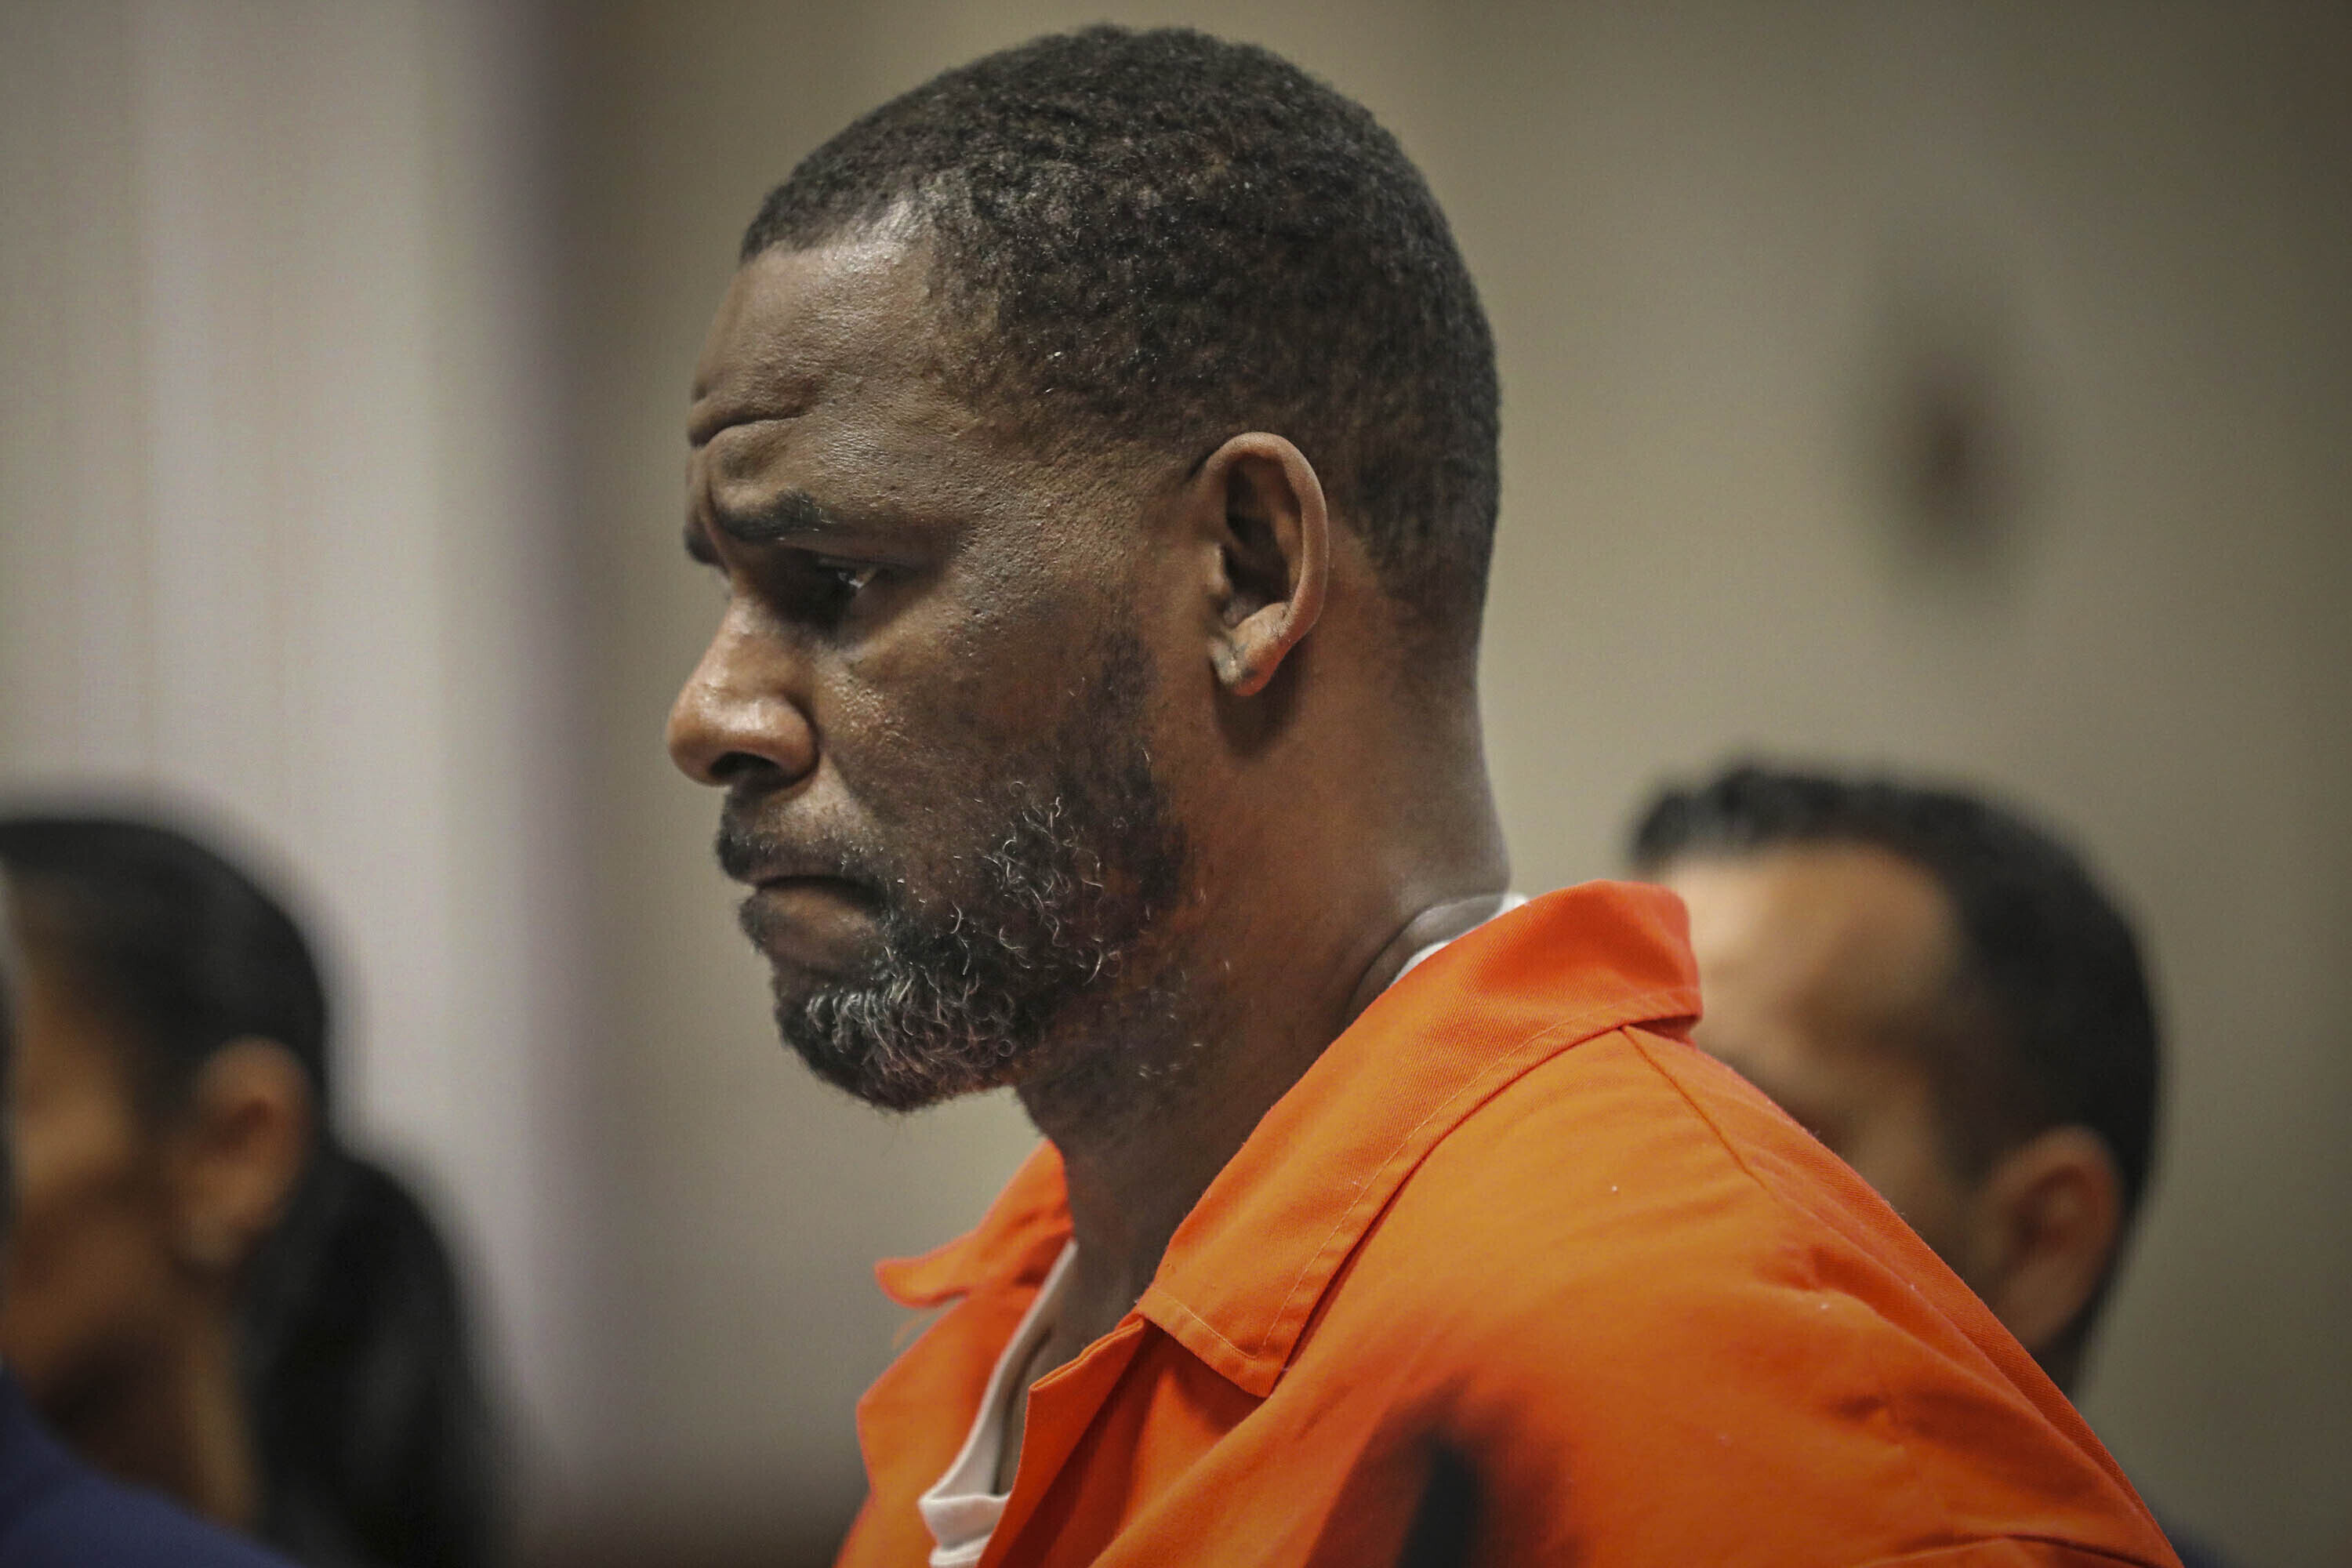 In this Sept. 17, 2019, file photo, R. Kelly appears during a hearing at the Leighton Criminal Courthouse in Chicago.